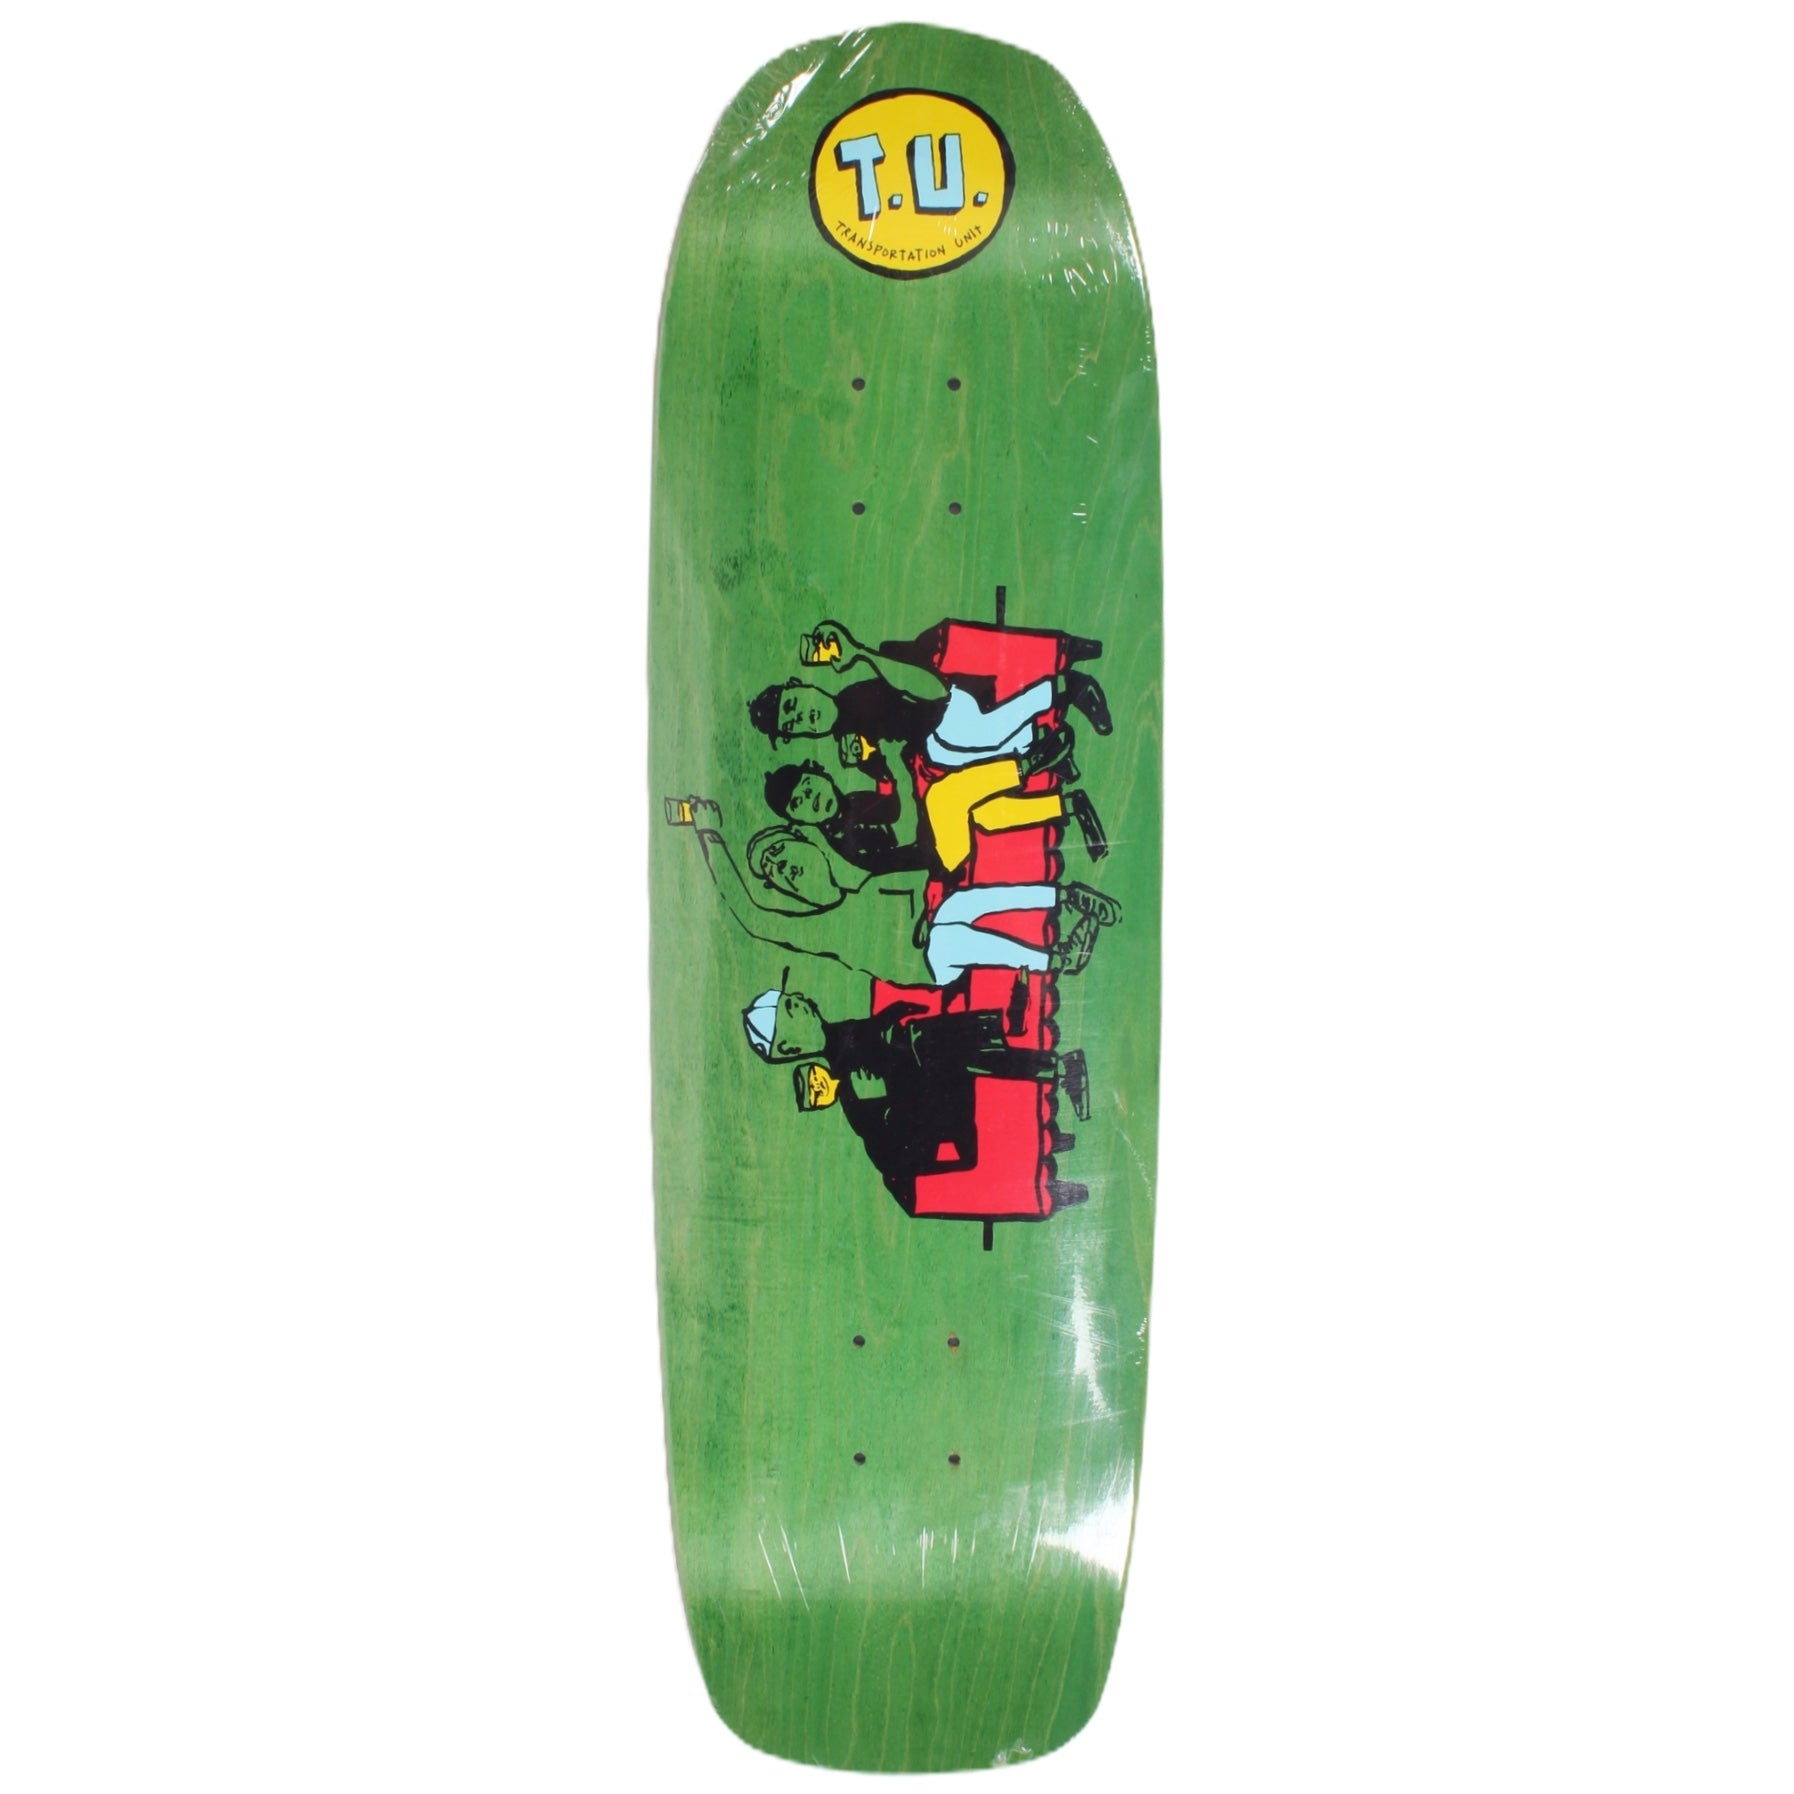 Transportation Unit Party Bois 2 Deck Diamond Nose Shape 8.875